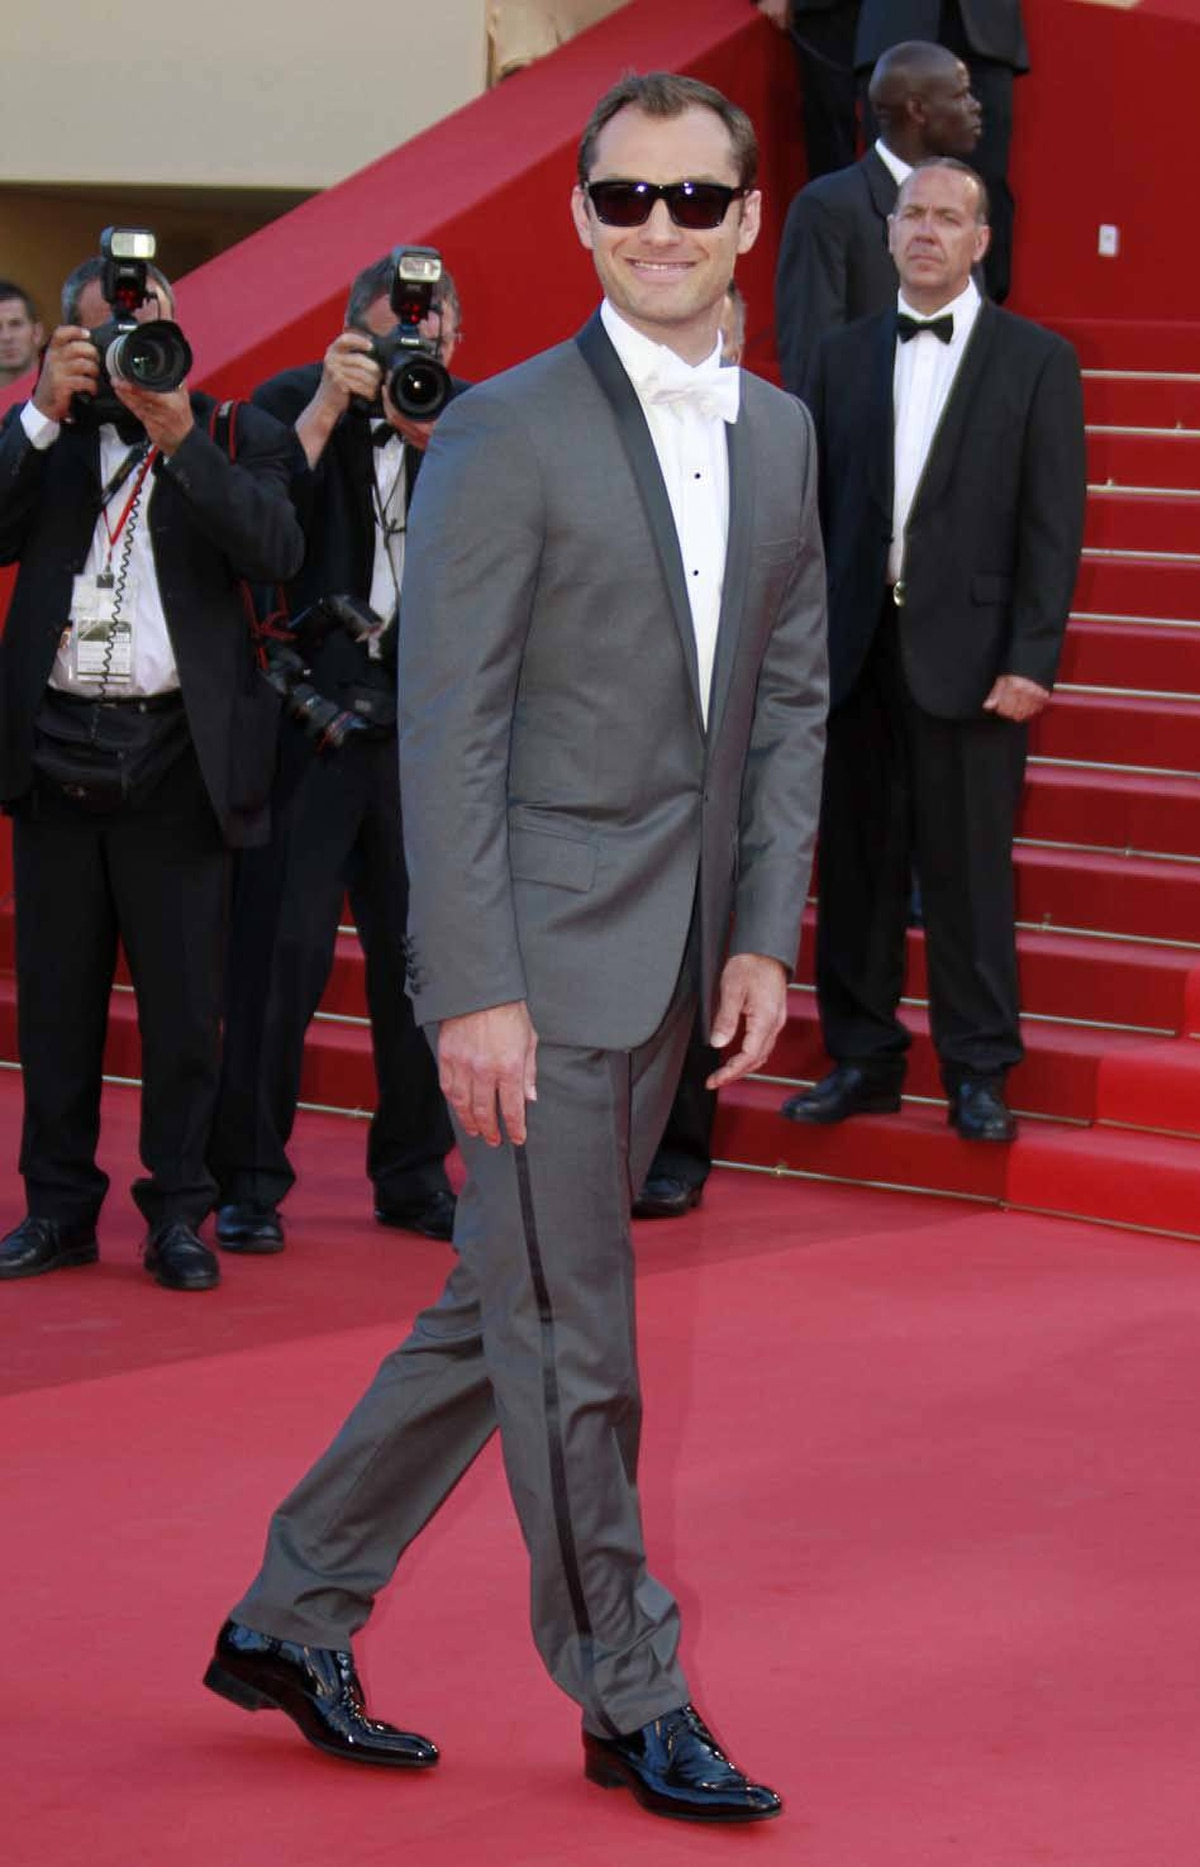 """Cannes jury member Jude Law on the red carpet for the screening of the film """"The Tree of Life"""" at the Cannes Film Festival on Monday."""